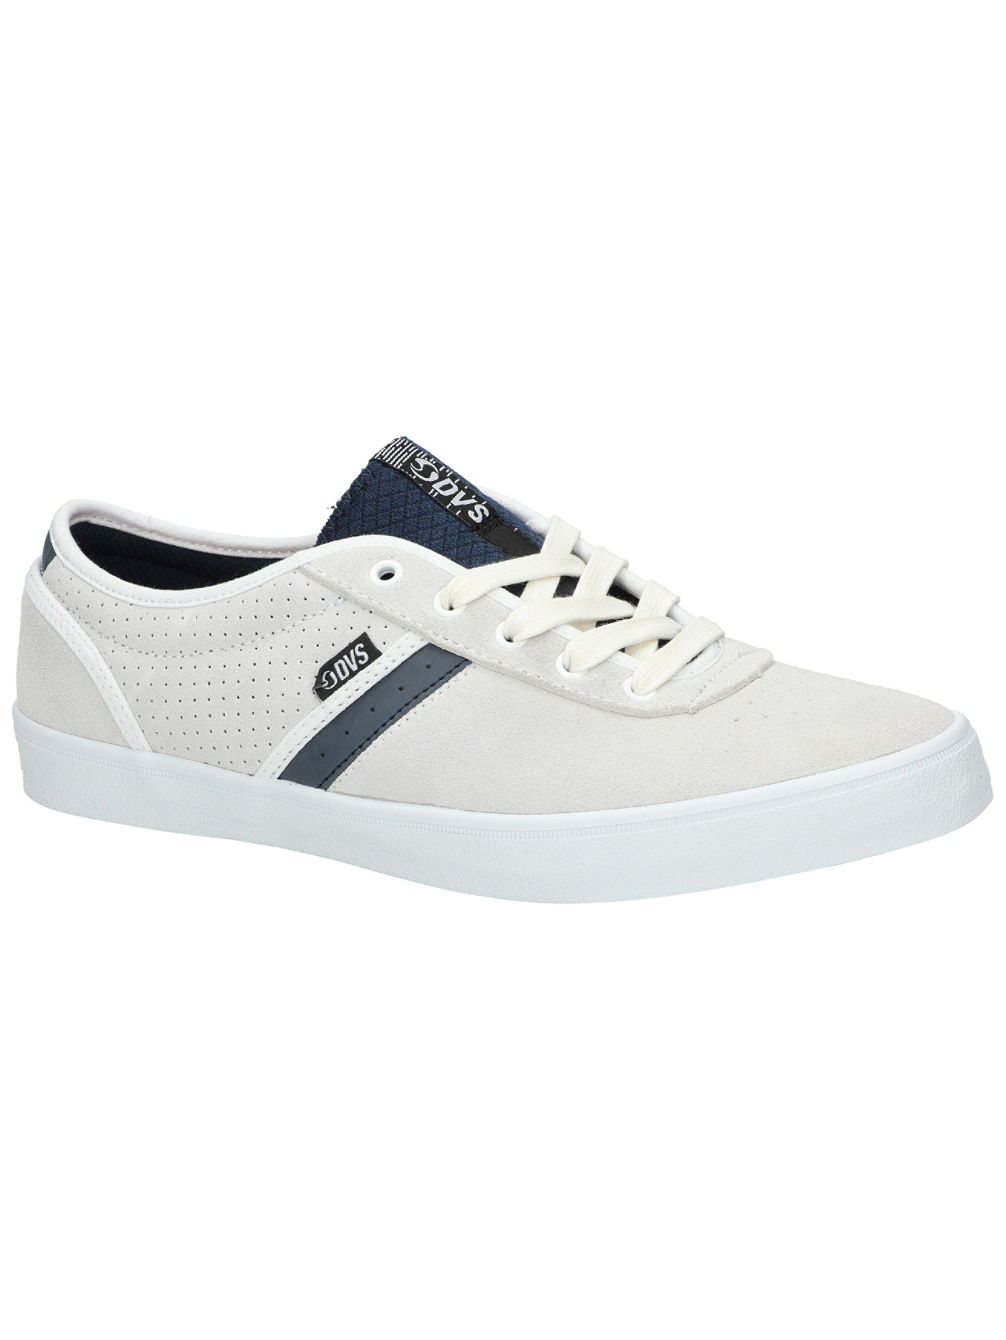 Epitaph Soco Skate Shoes